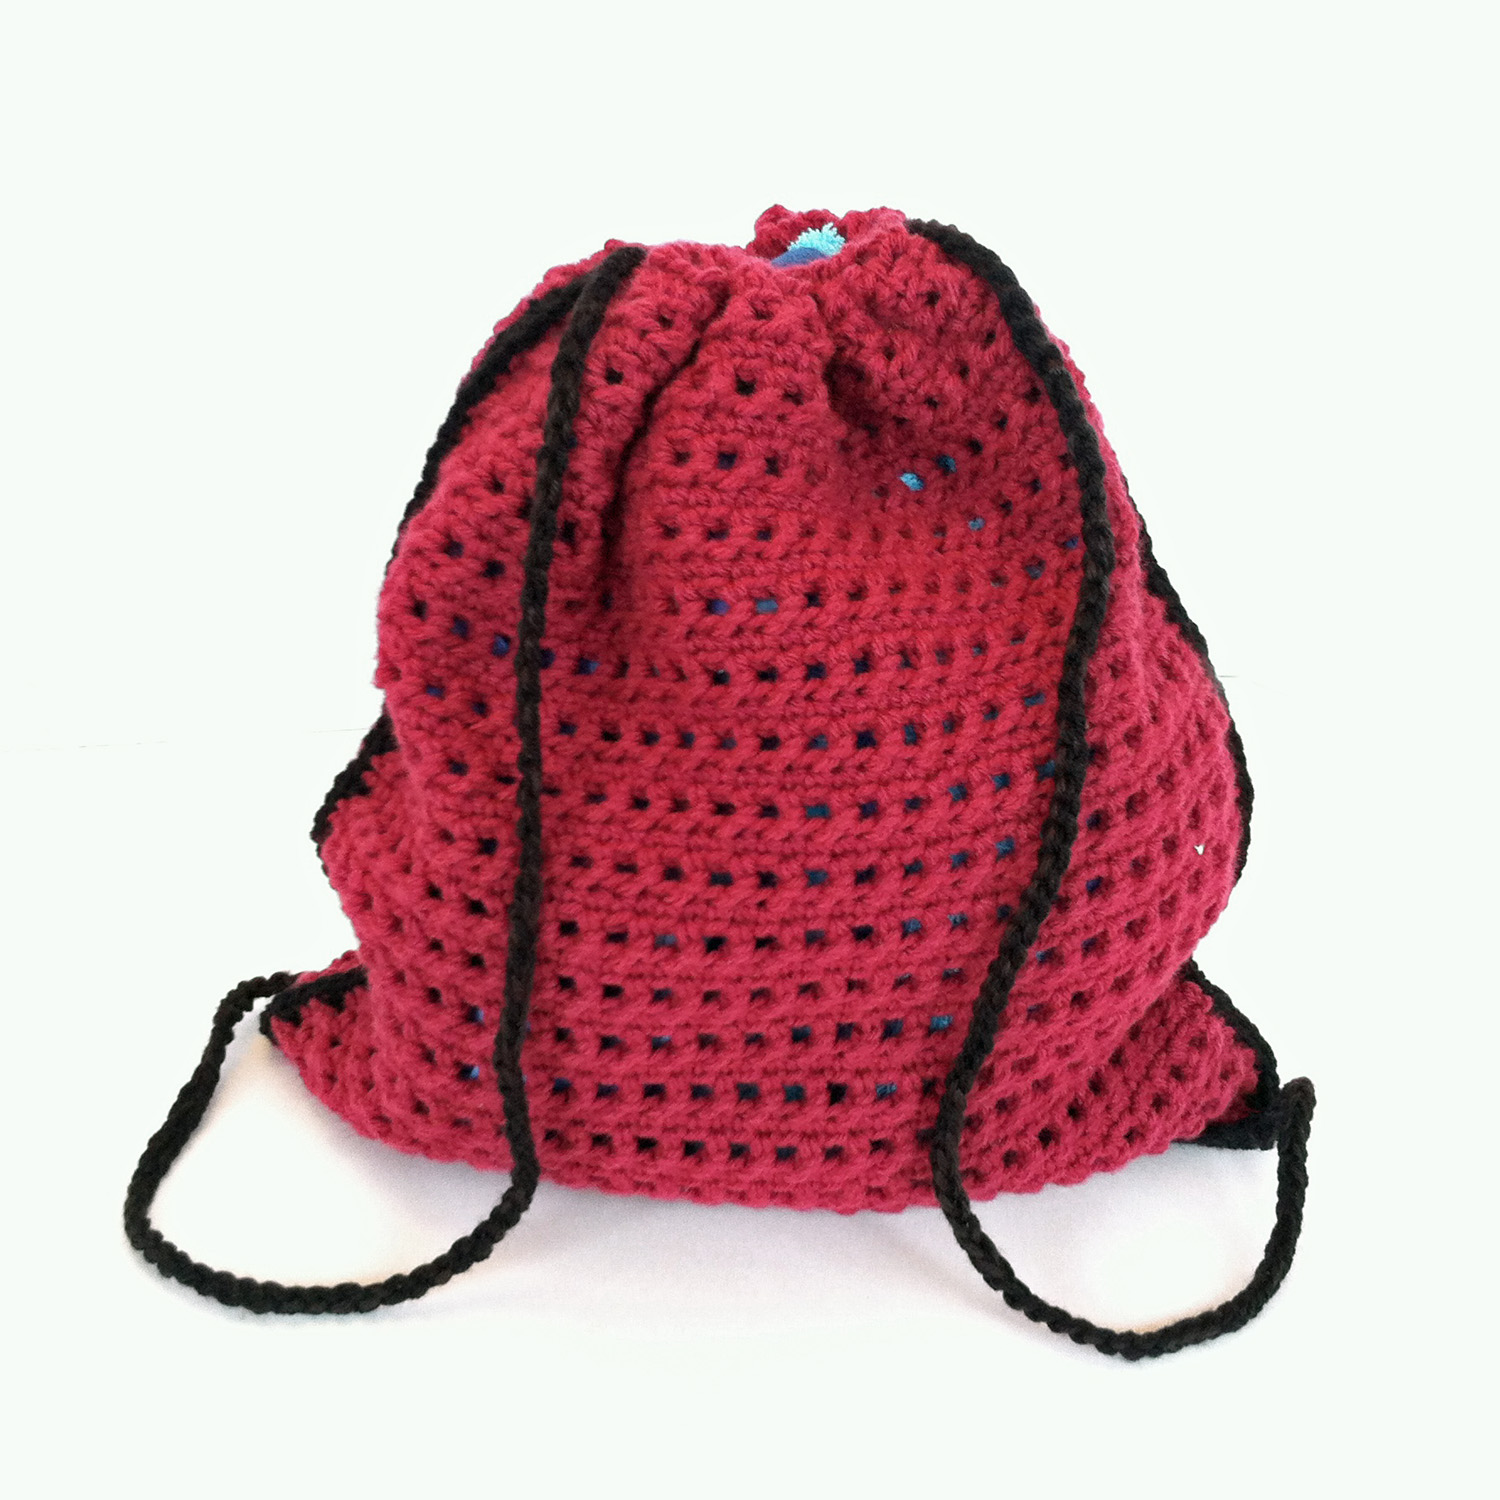 How to crochet a Little Backpack with Drawstrings popular among Teens | 1500x1500